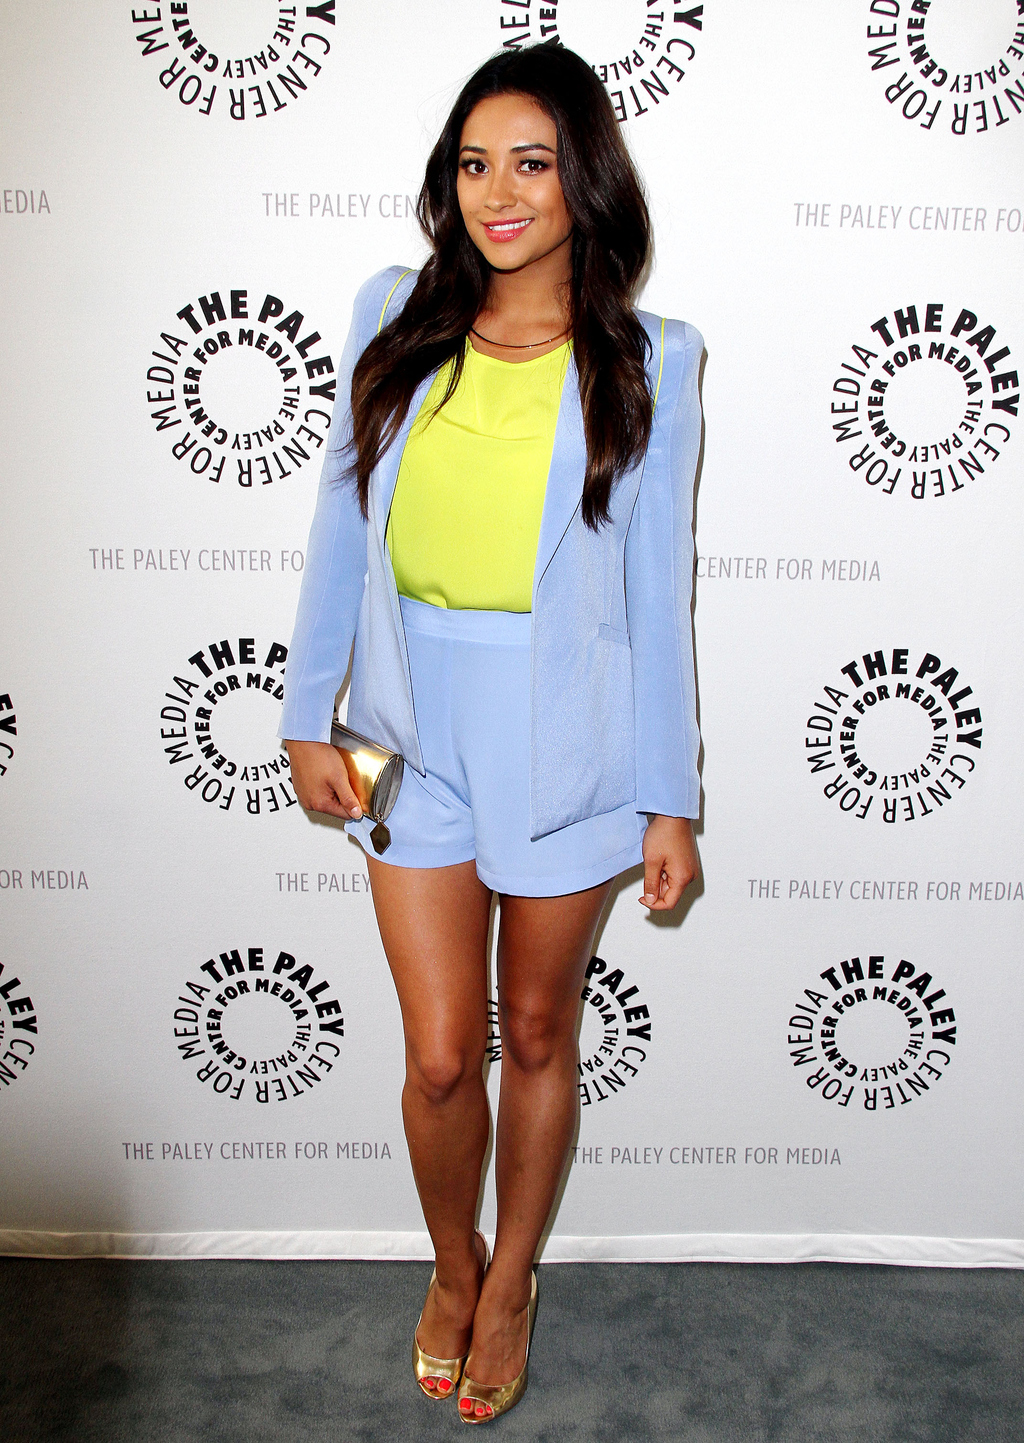 Shay Mitchell At The Paley Center